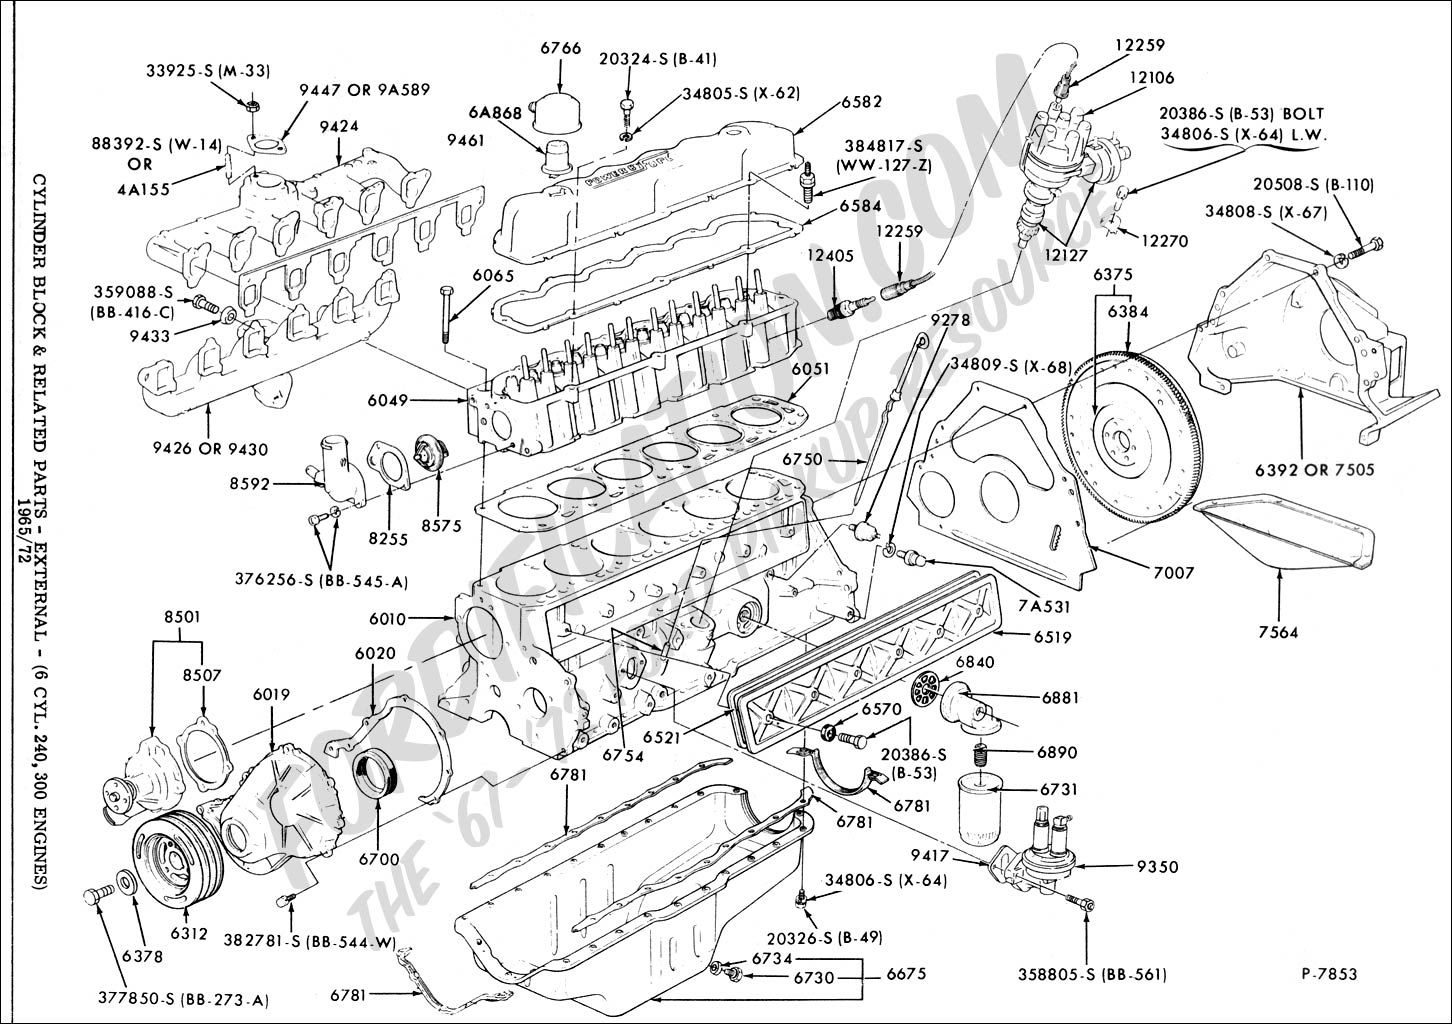 V16 Engine Diagram | Wiring Liry on